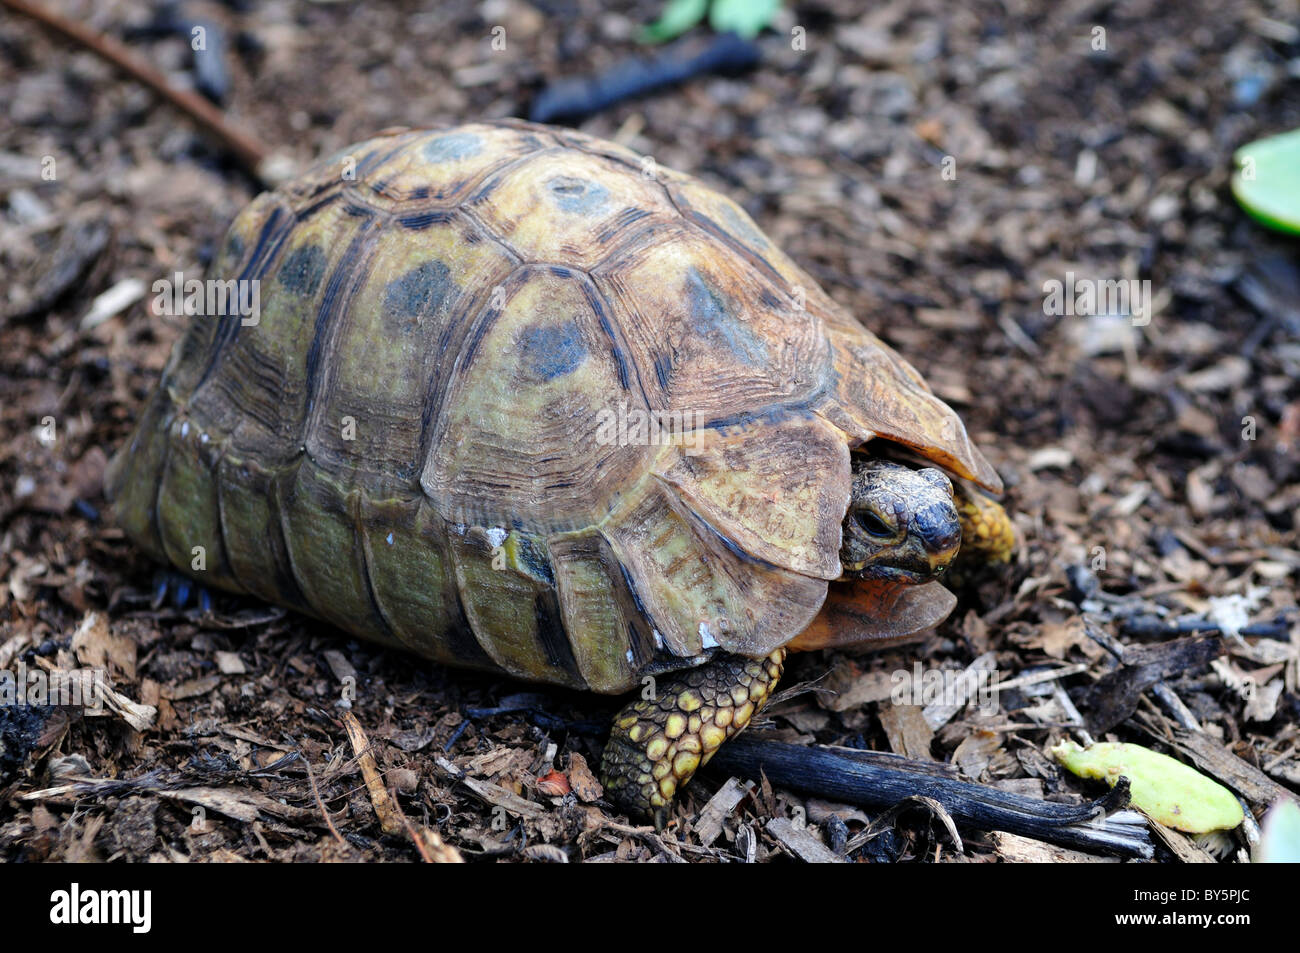 A leopard tortoise. South Africa. - Stock Image